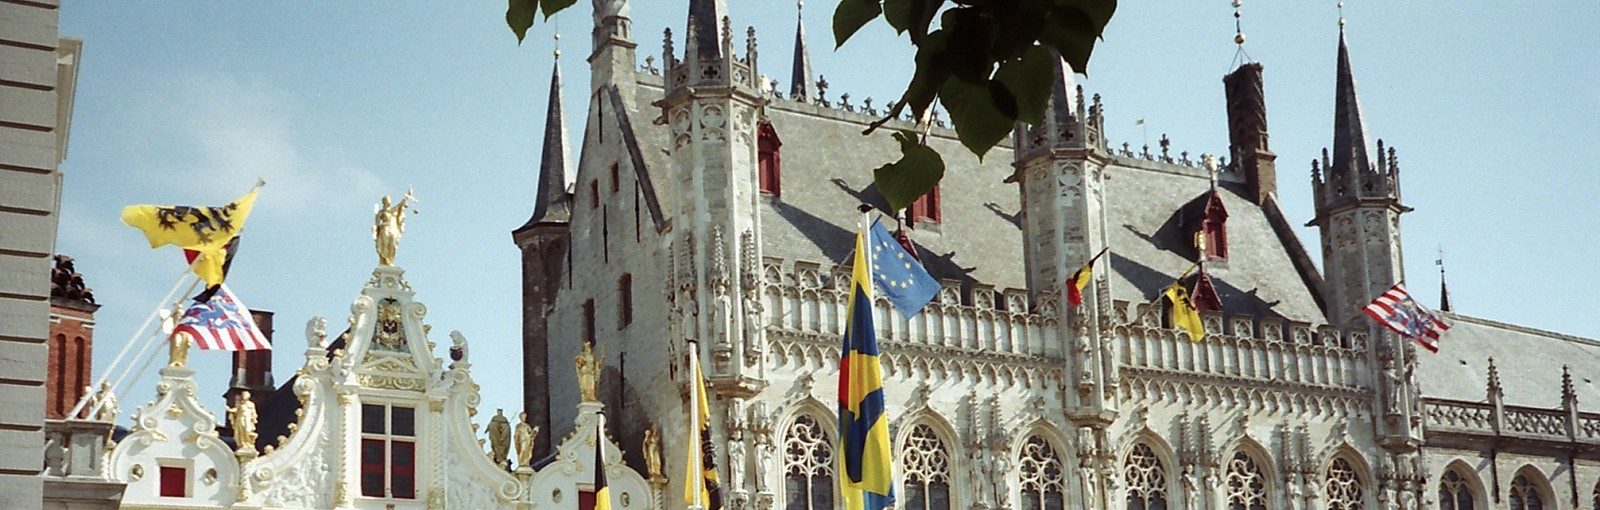 Tours Bruges - Full days - Day tours from Paris